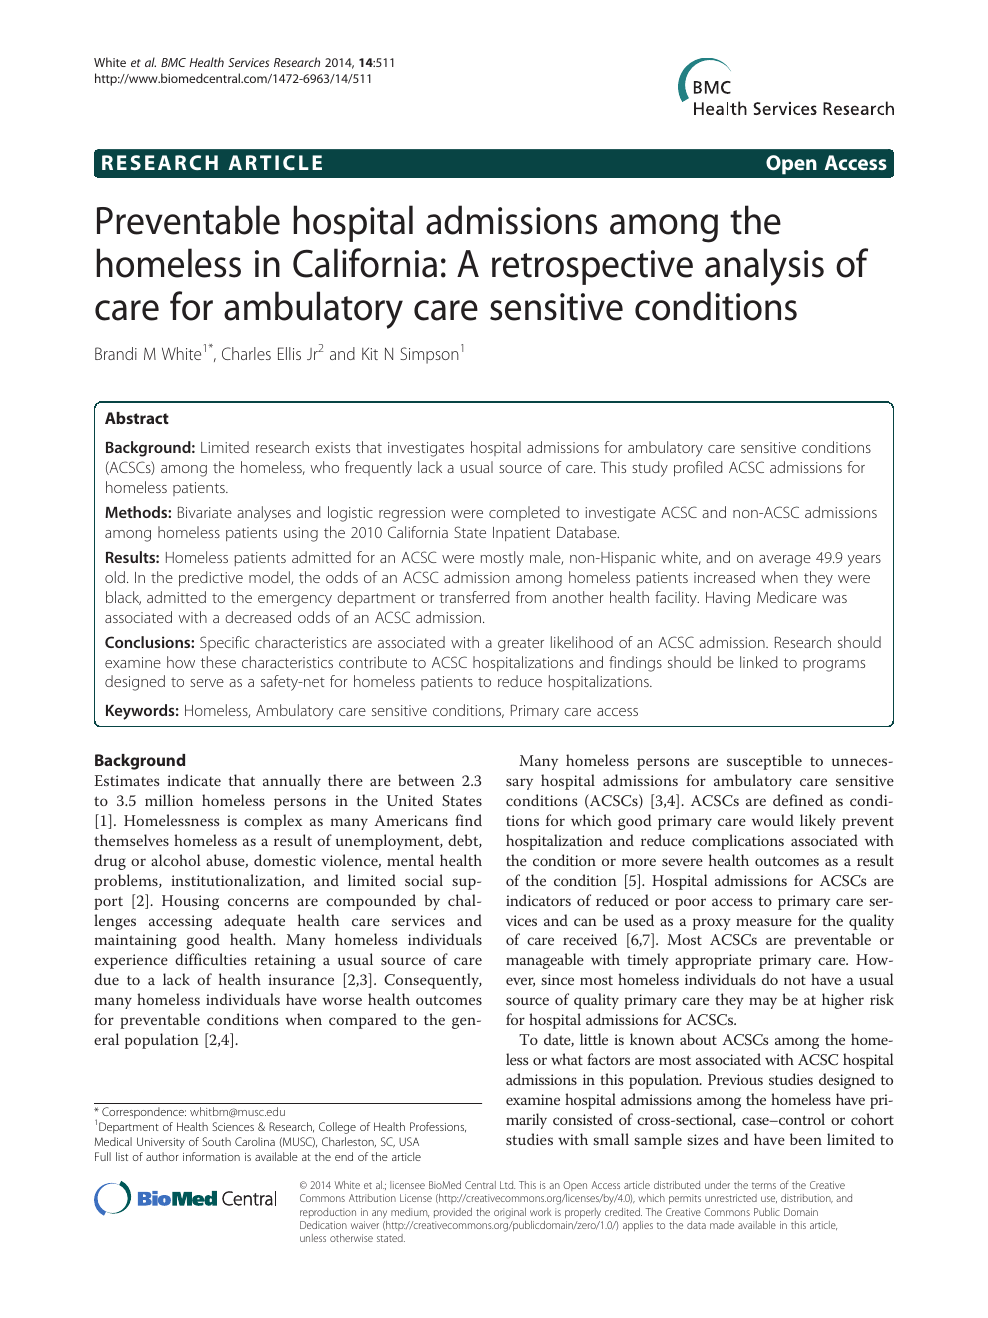 Preventable hospital admissions among the homeless in